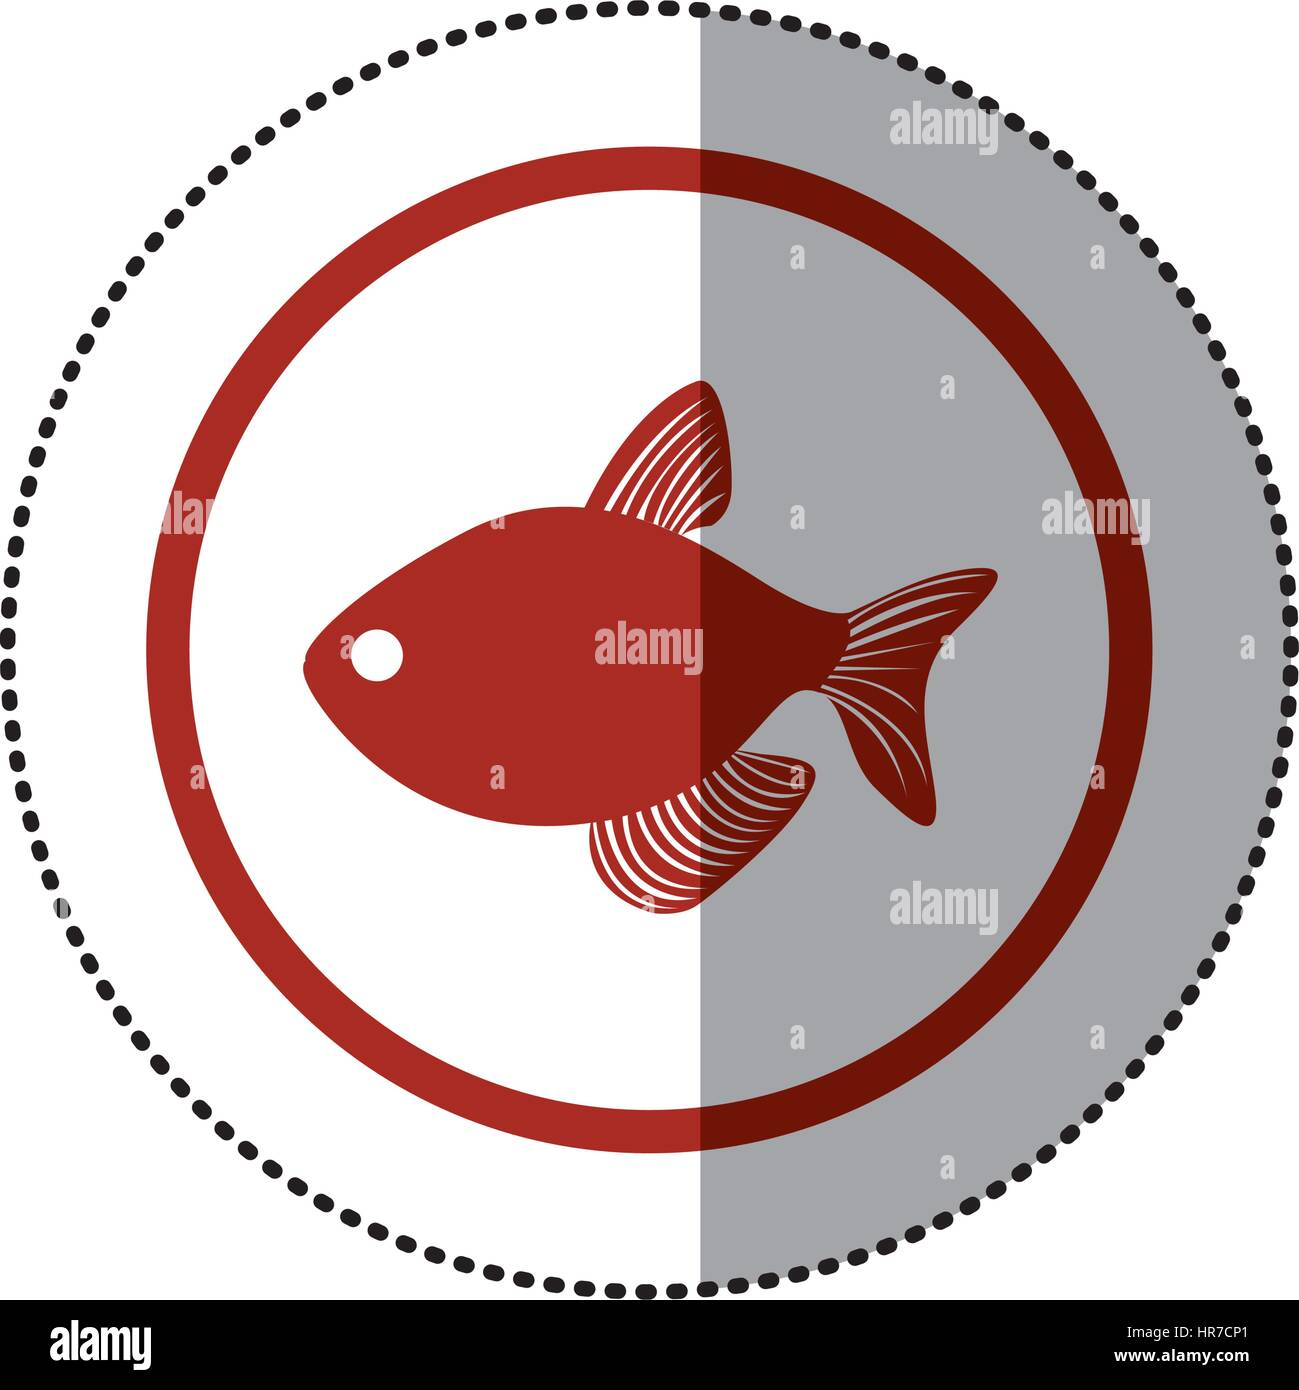 Marlin Stock Vector Images - Alamy